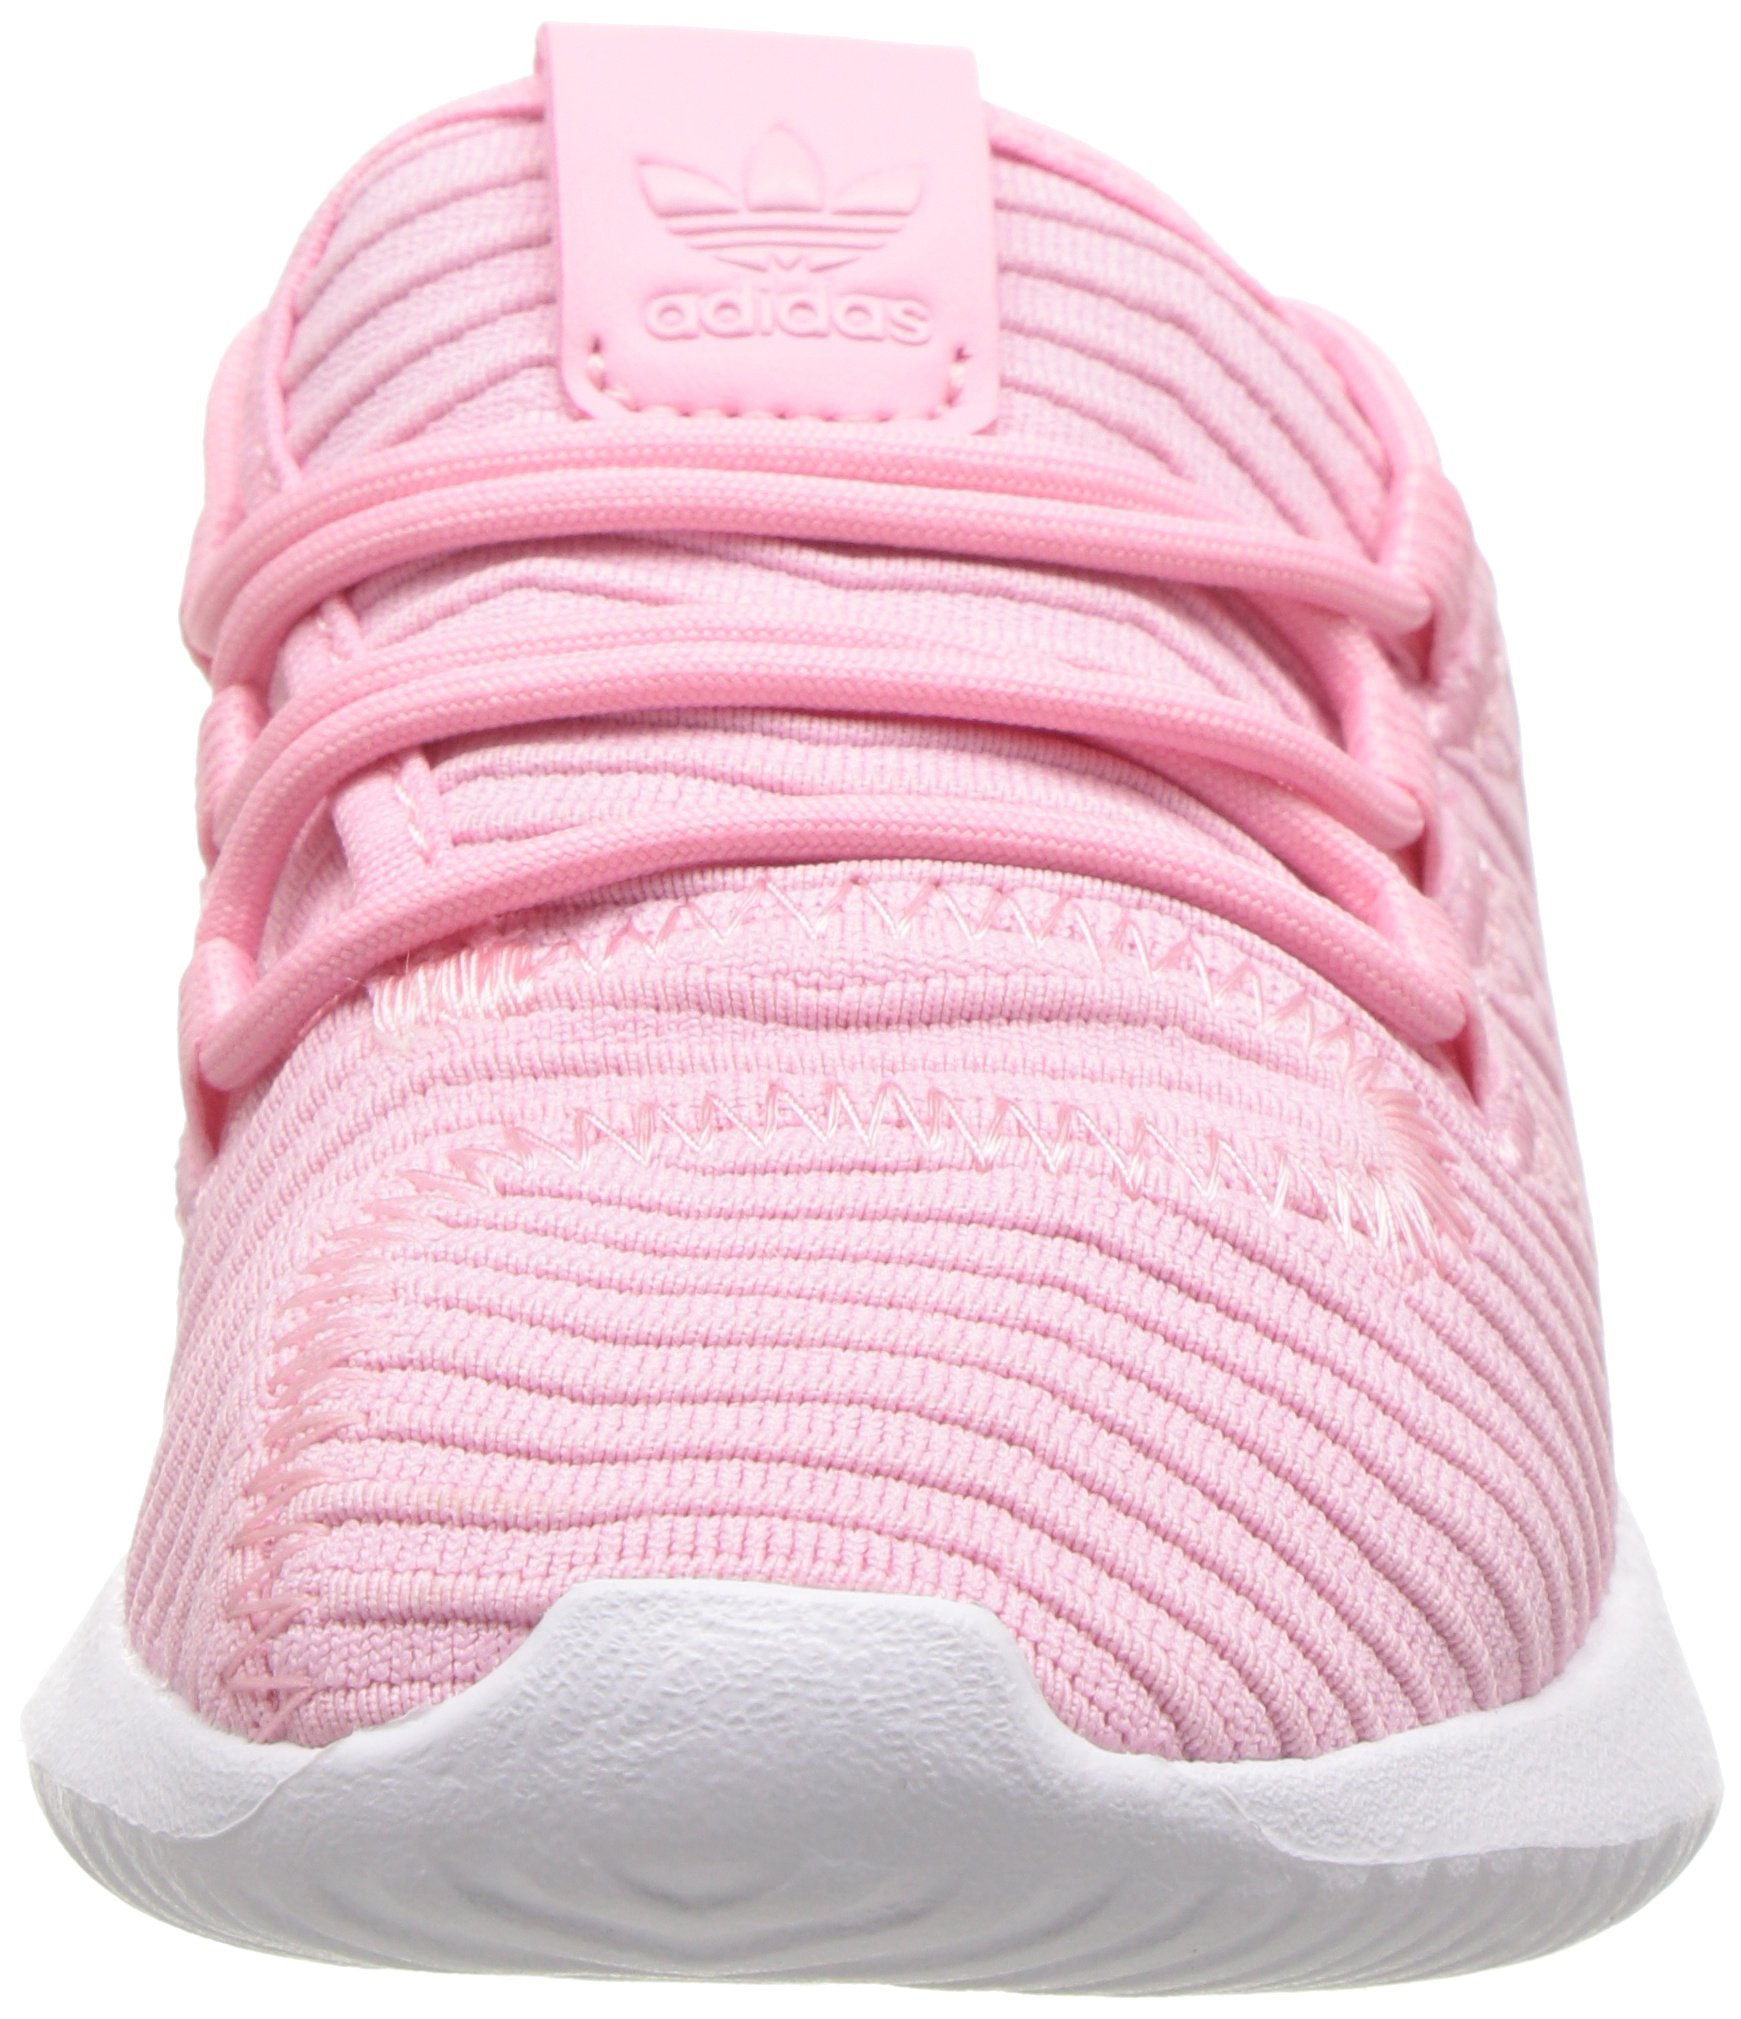 adidas Originals Baby Tubular Shadow Light Pink/White, 7K M US Toddler by adidas Originals (Image #4)